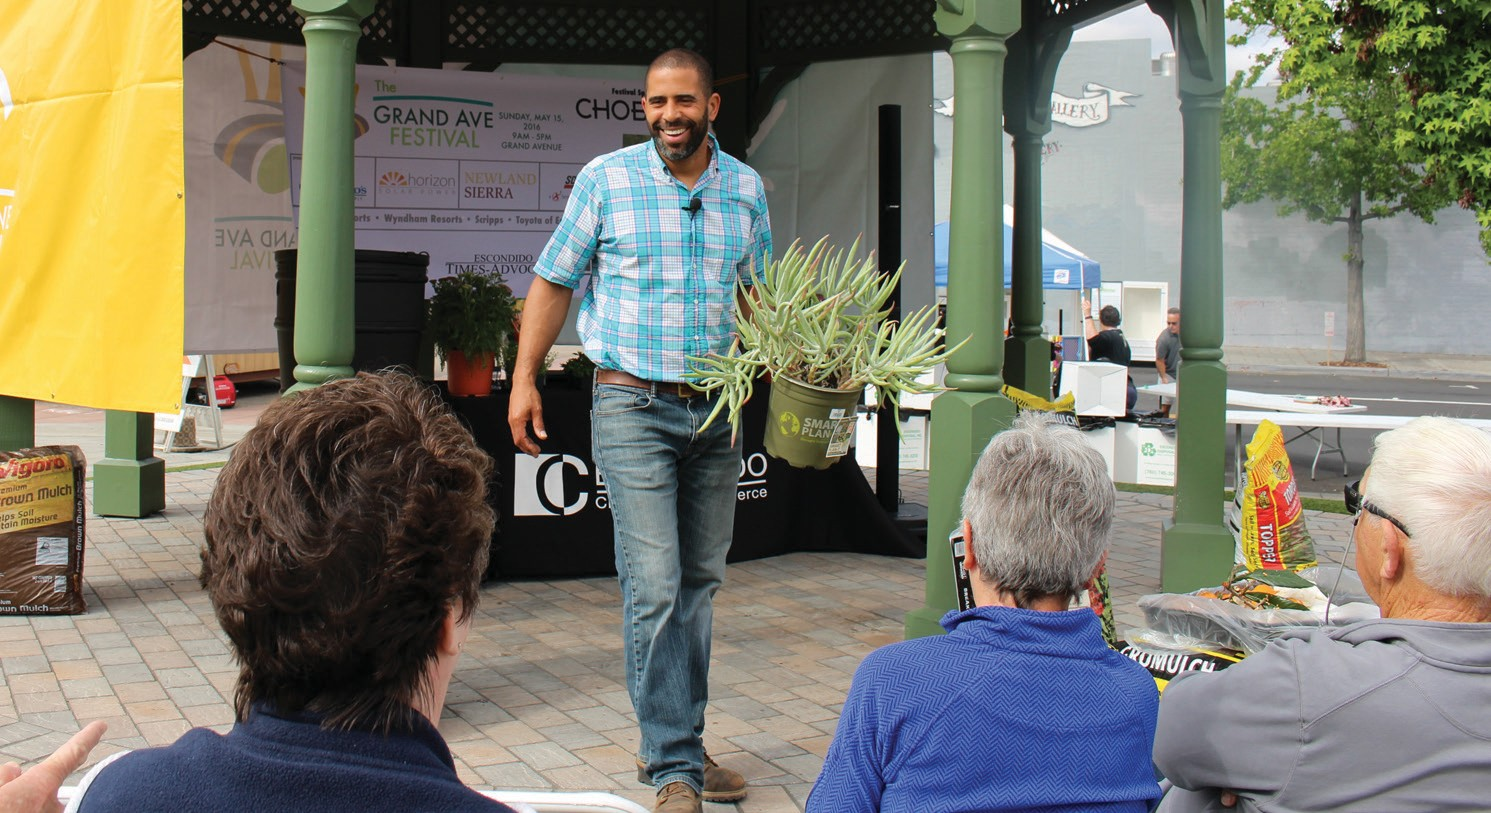 TV personality Ahmed Hassan provided hands-on information on gardening and landscaping Sunday.